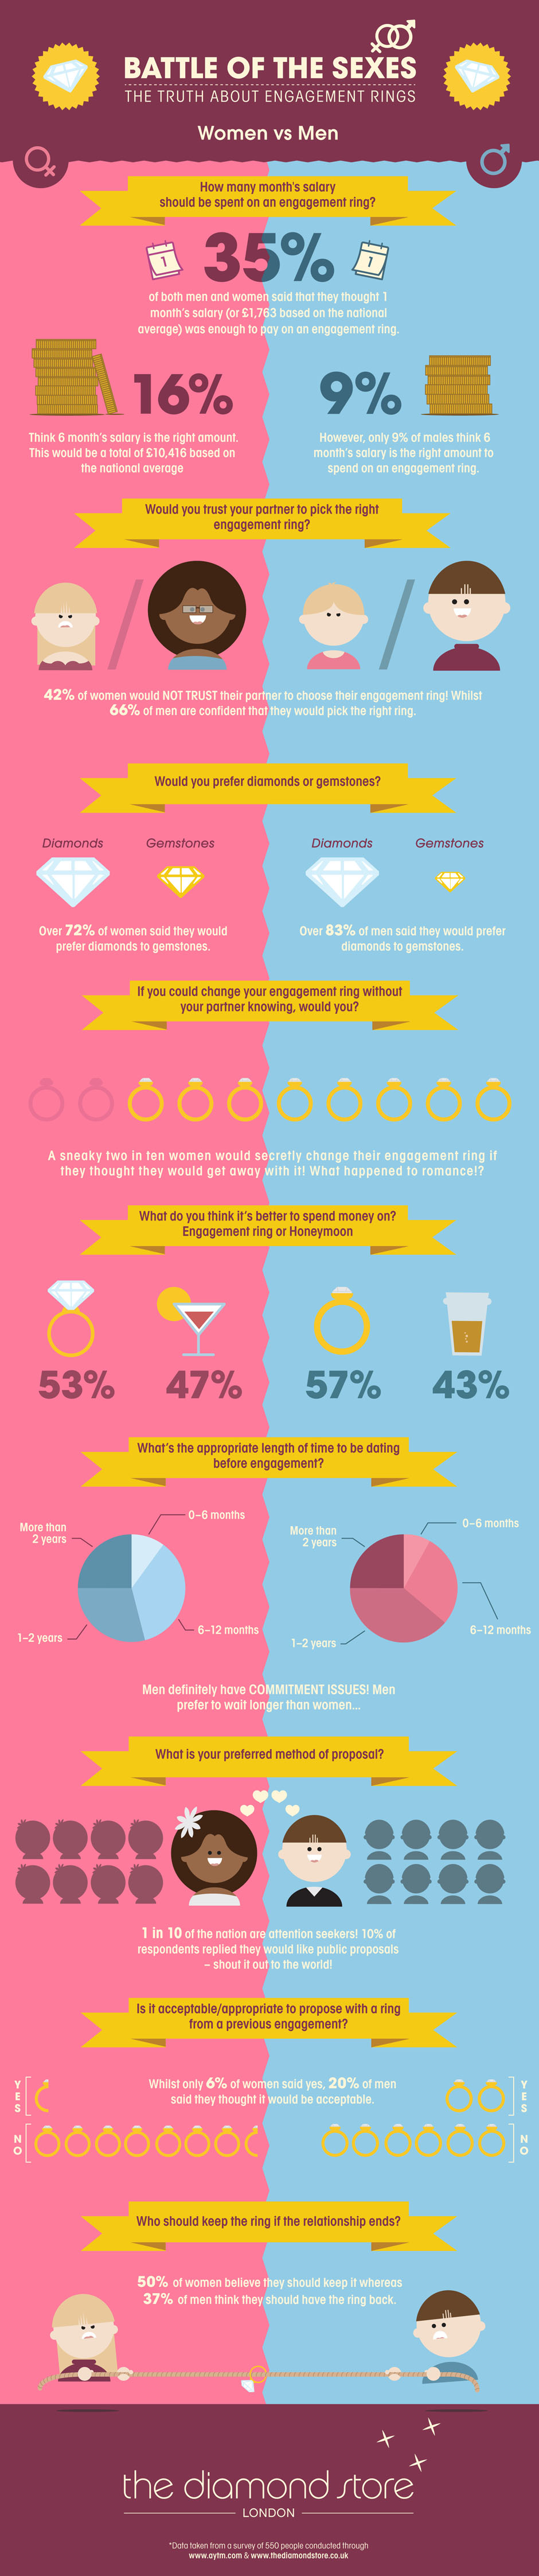 Battle of the Sexes: the Truth About Engagement Rings